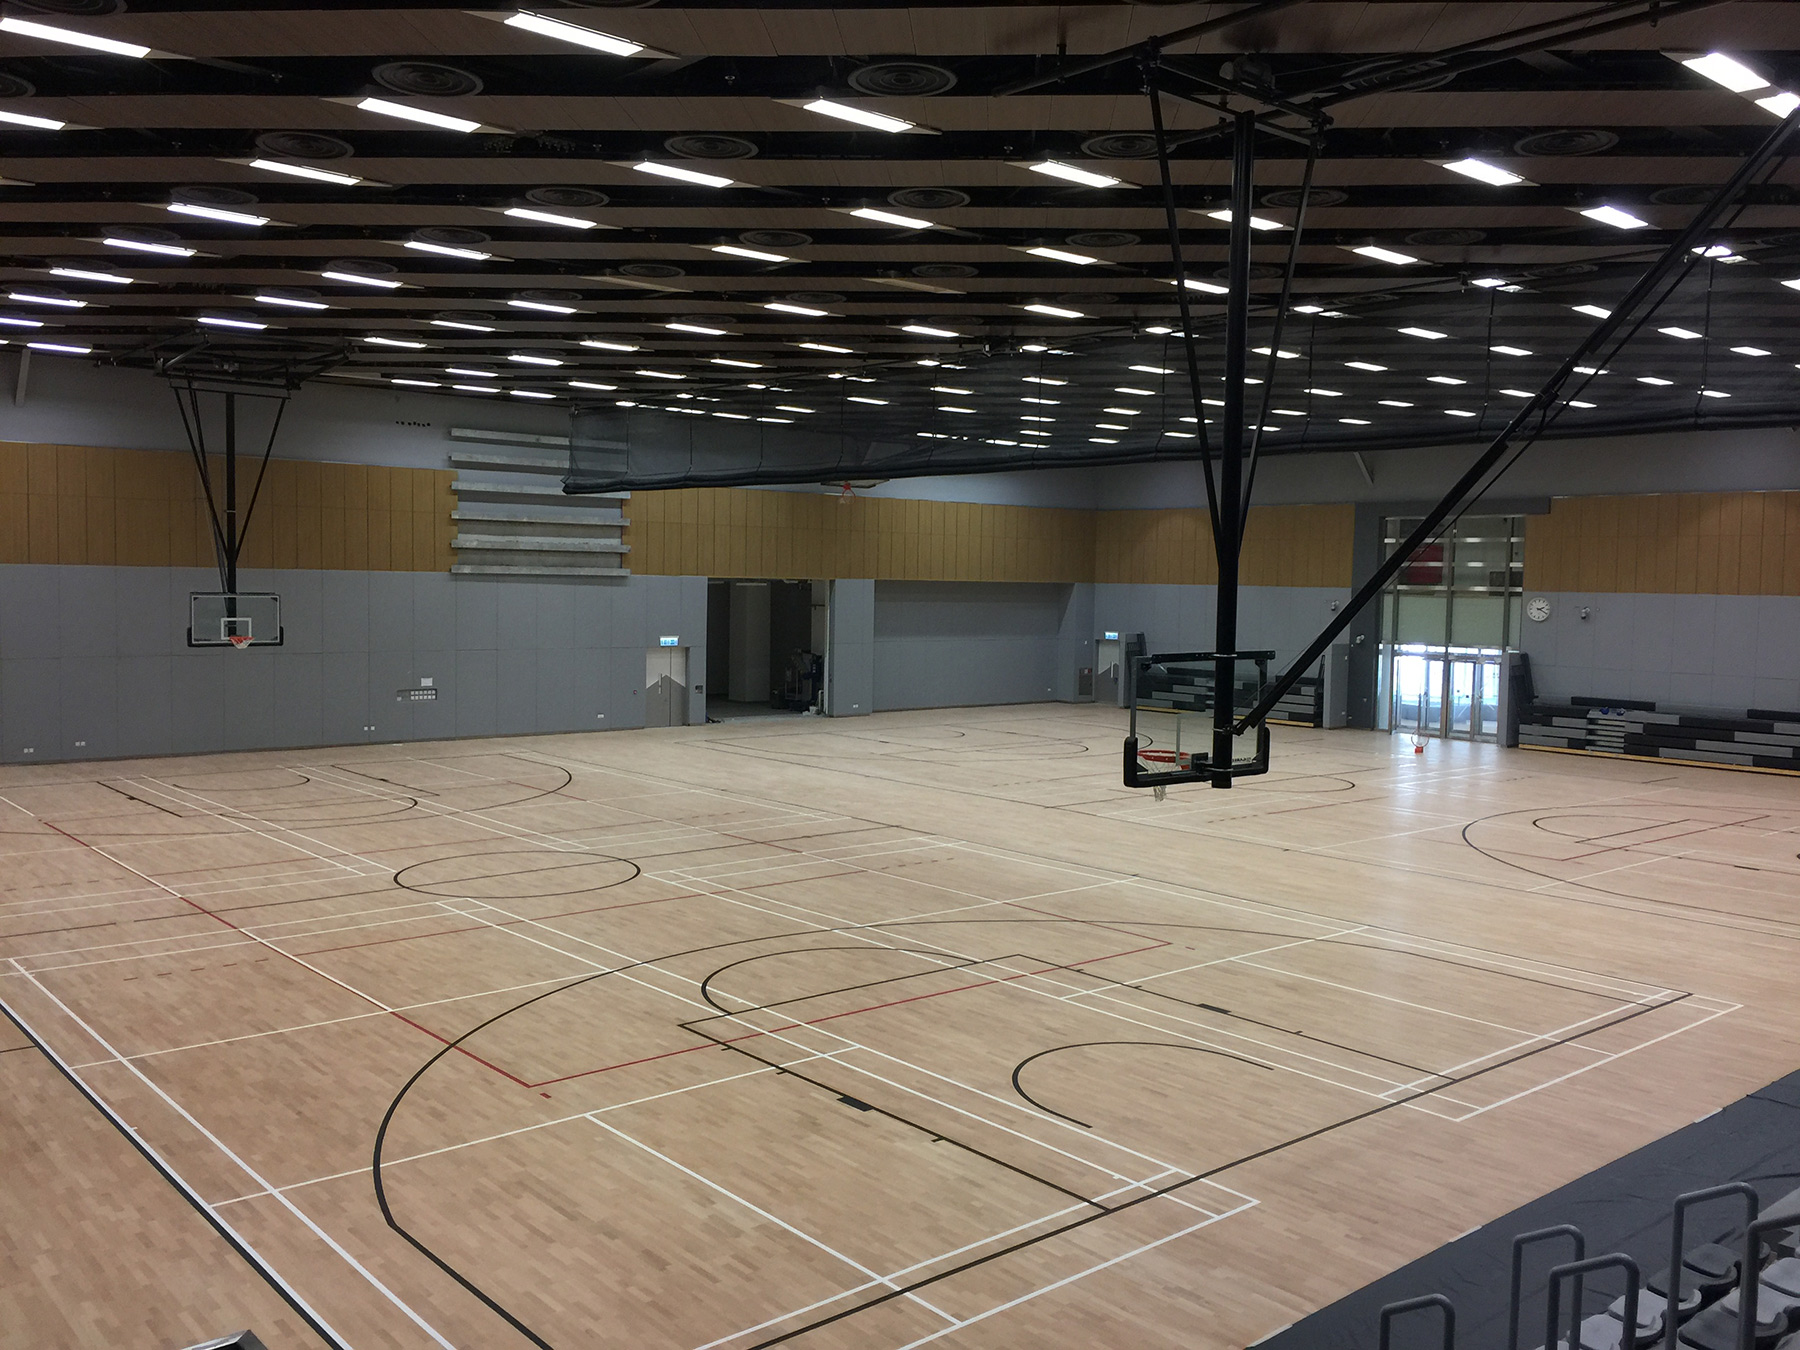 experienced floors basketball for the floor designing court blog your perfect courtbuilders sport schools family